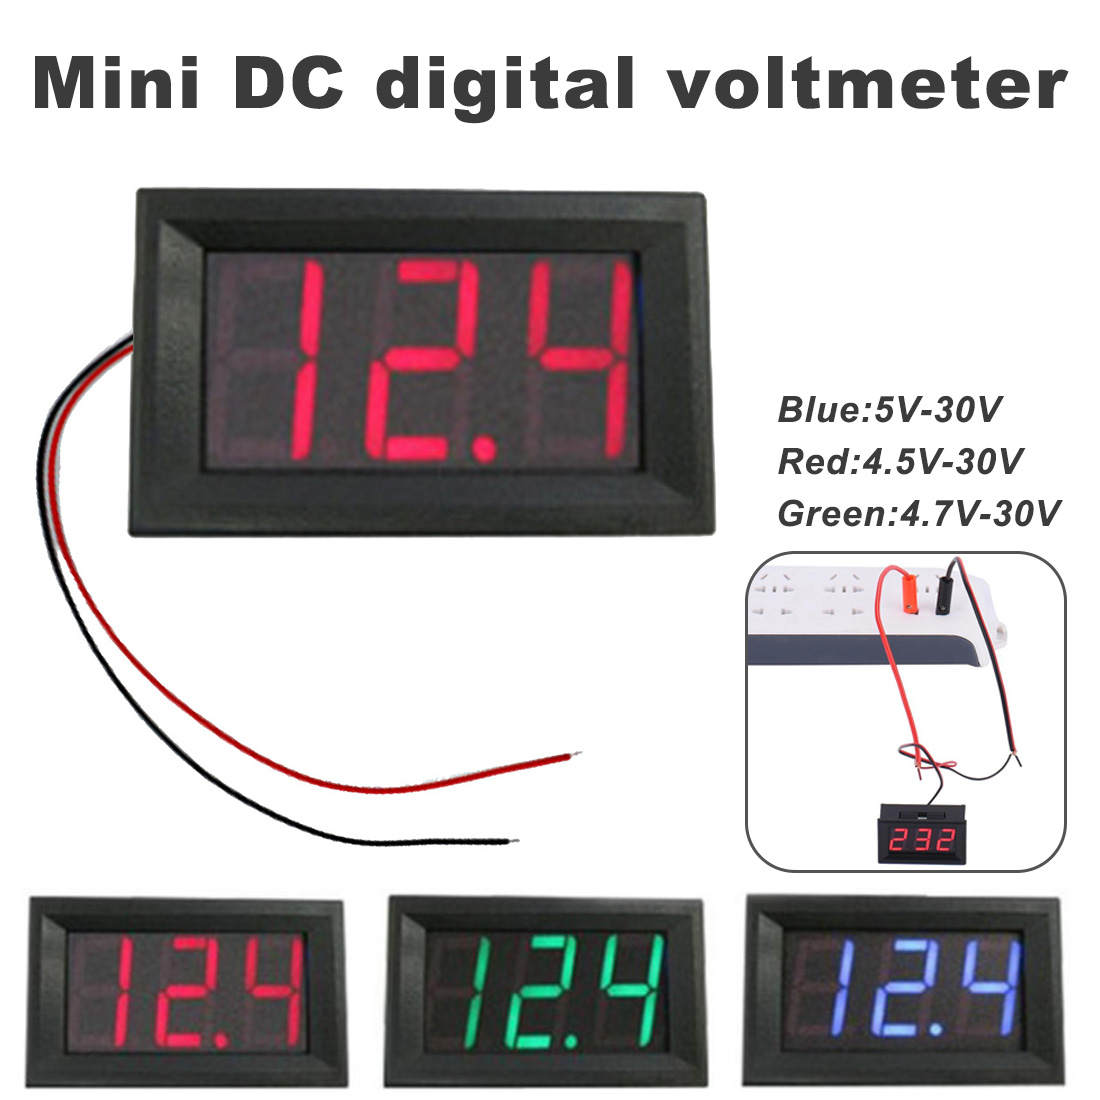 DC 4.5V To 30V Mini Digital Voltmeter Digital Voltmeter Voltage Panel Meter Red/Blue/Green For Electromobile Motorcycle Car